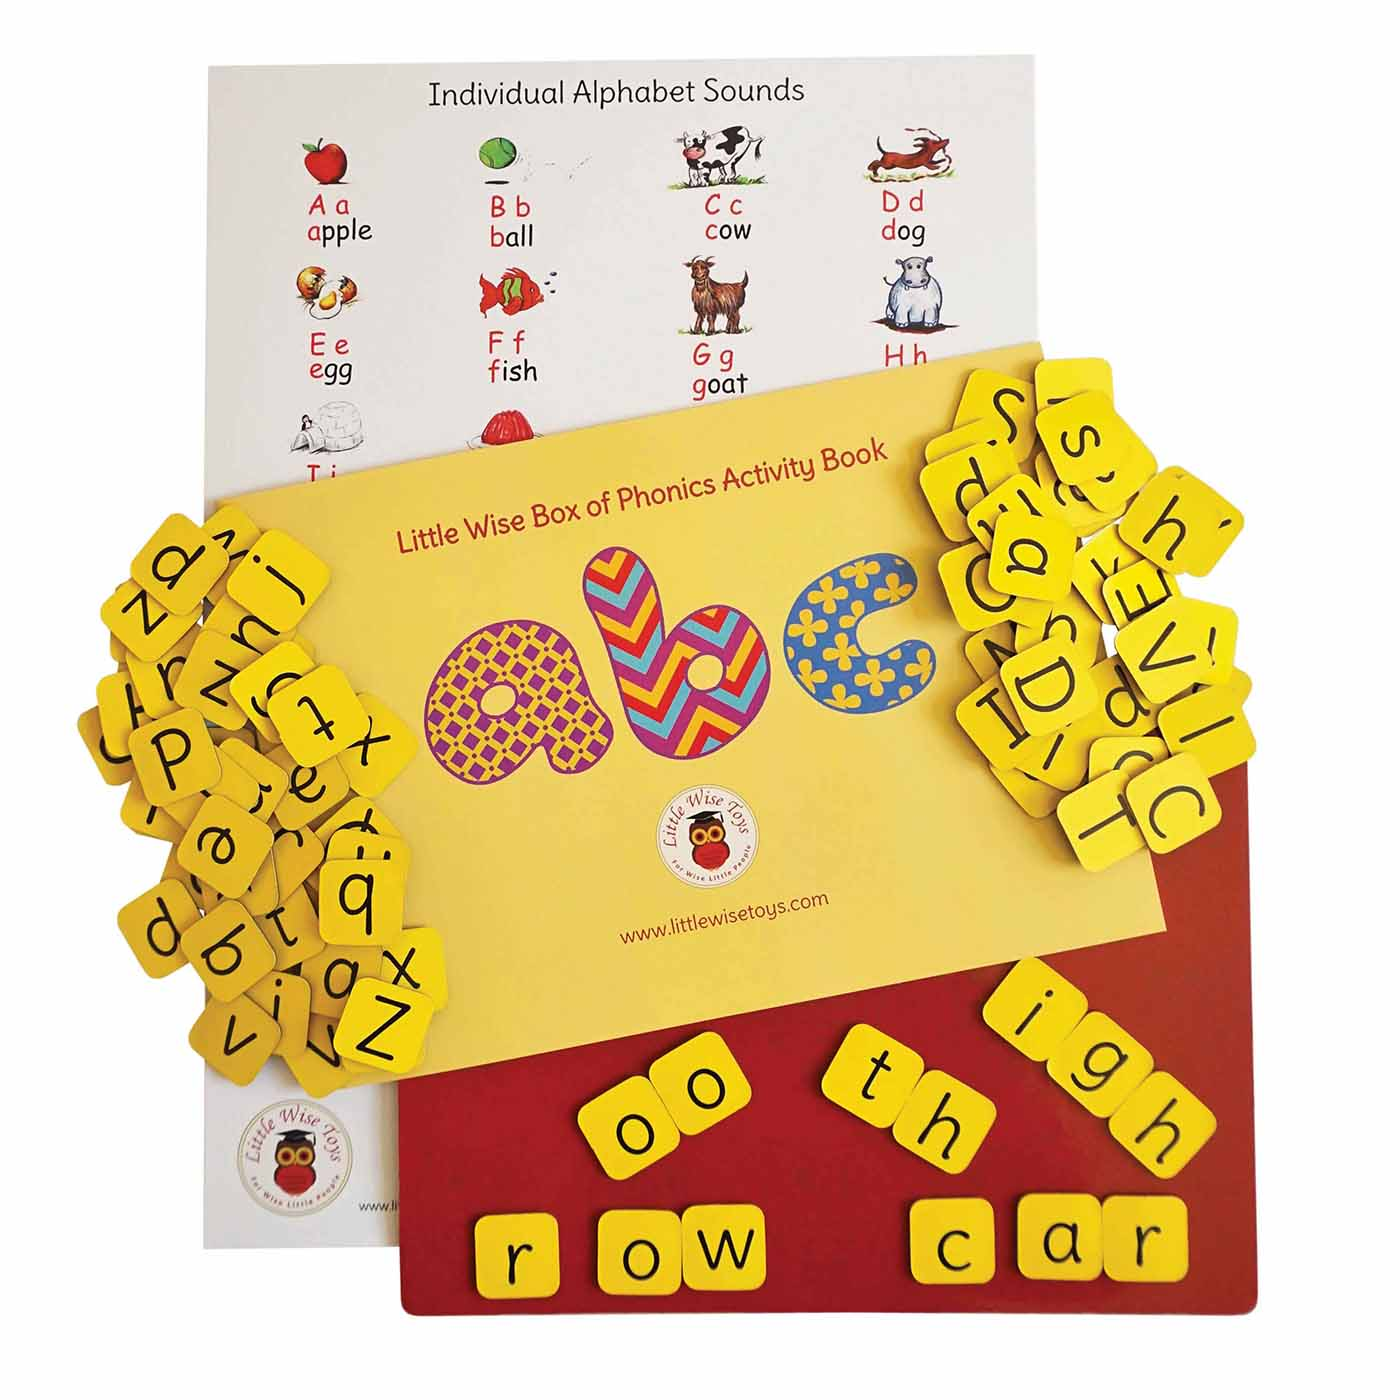 Phonics game - educational toy and learning toy for children.